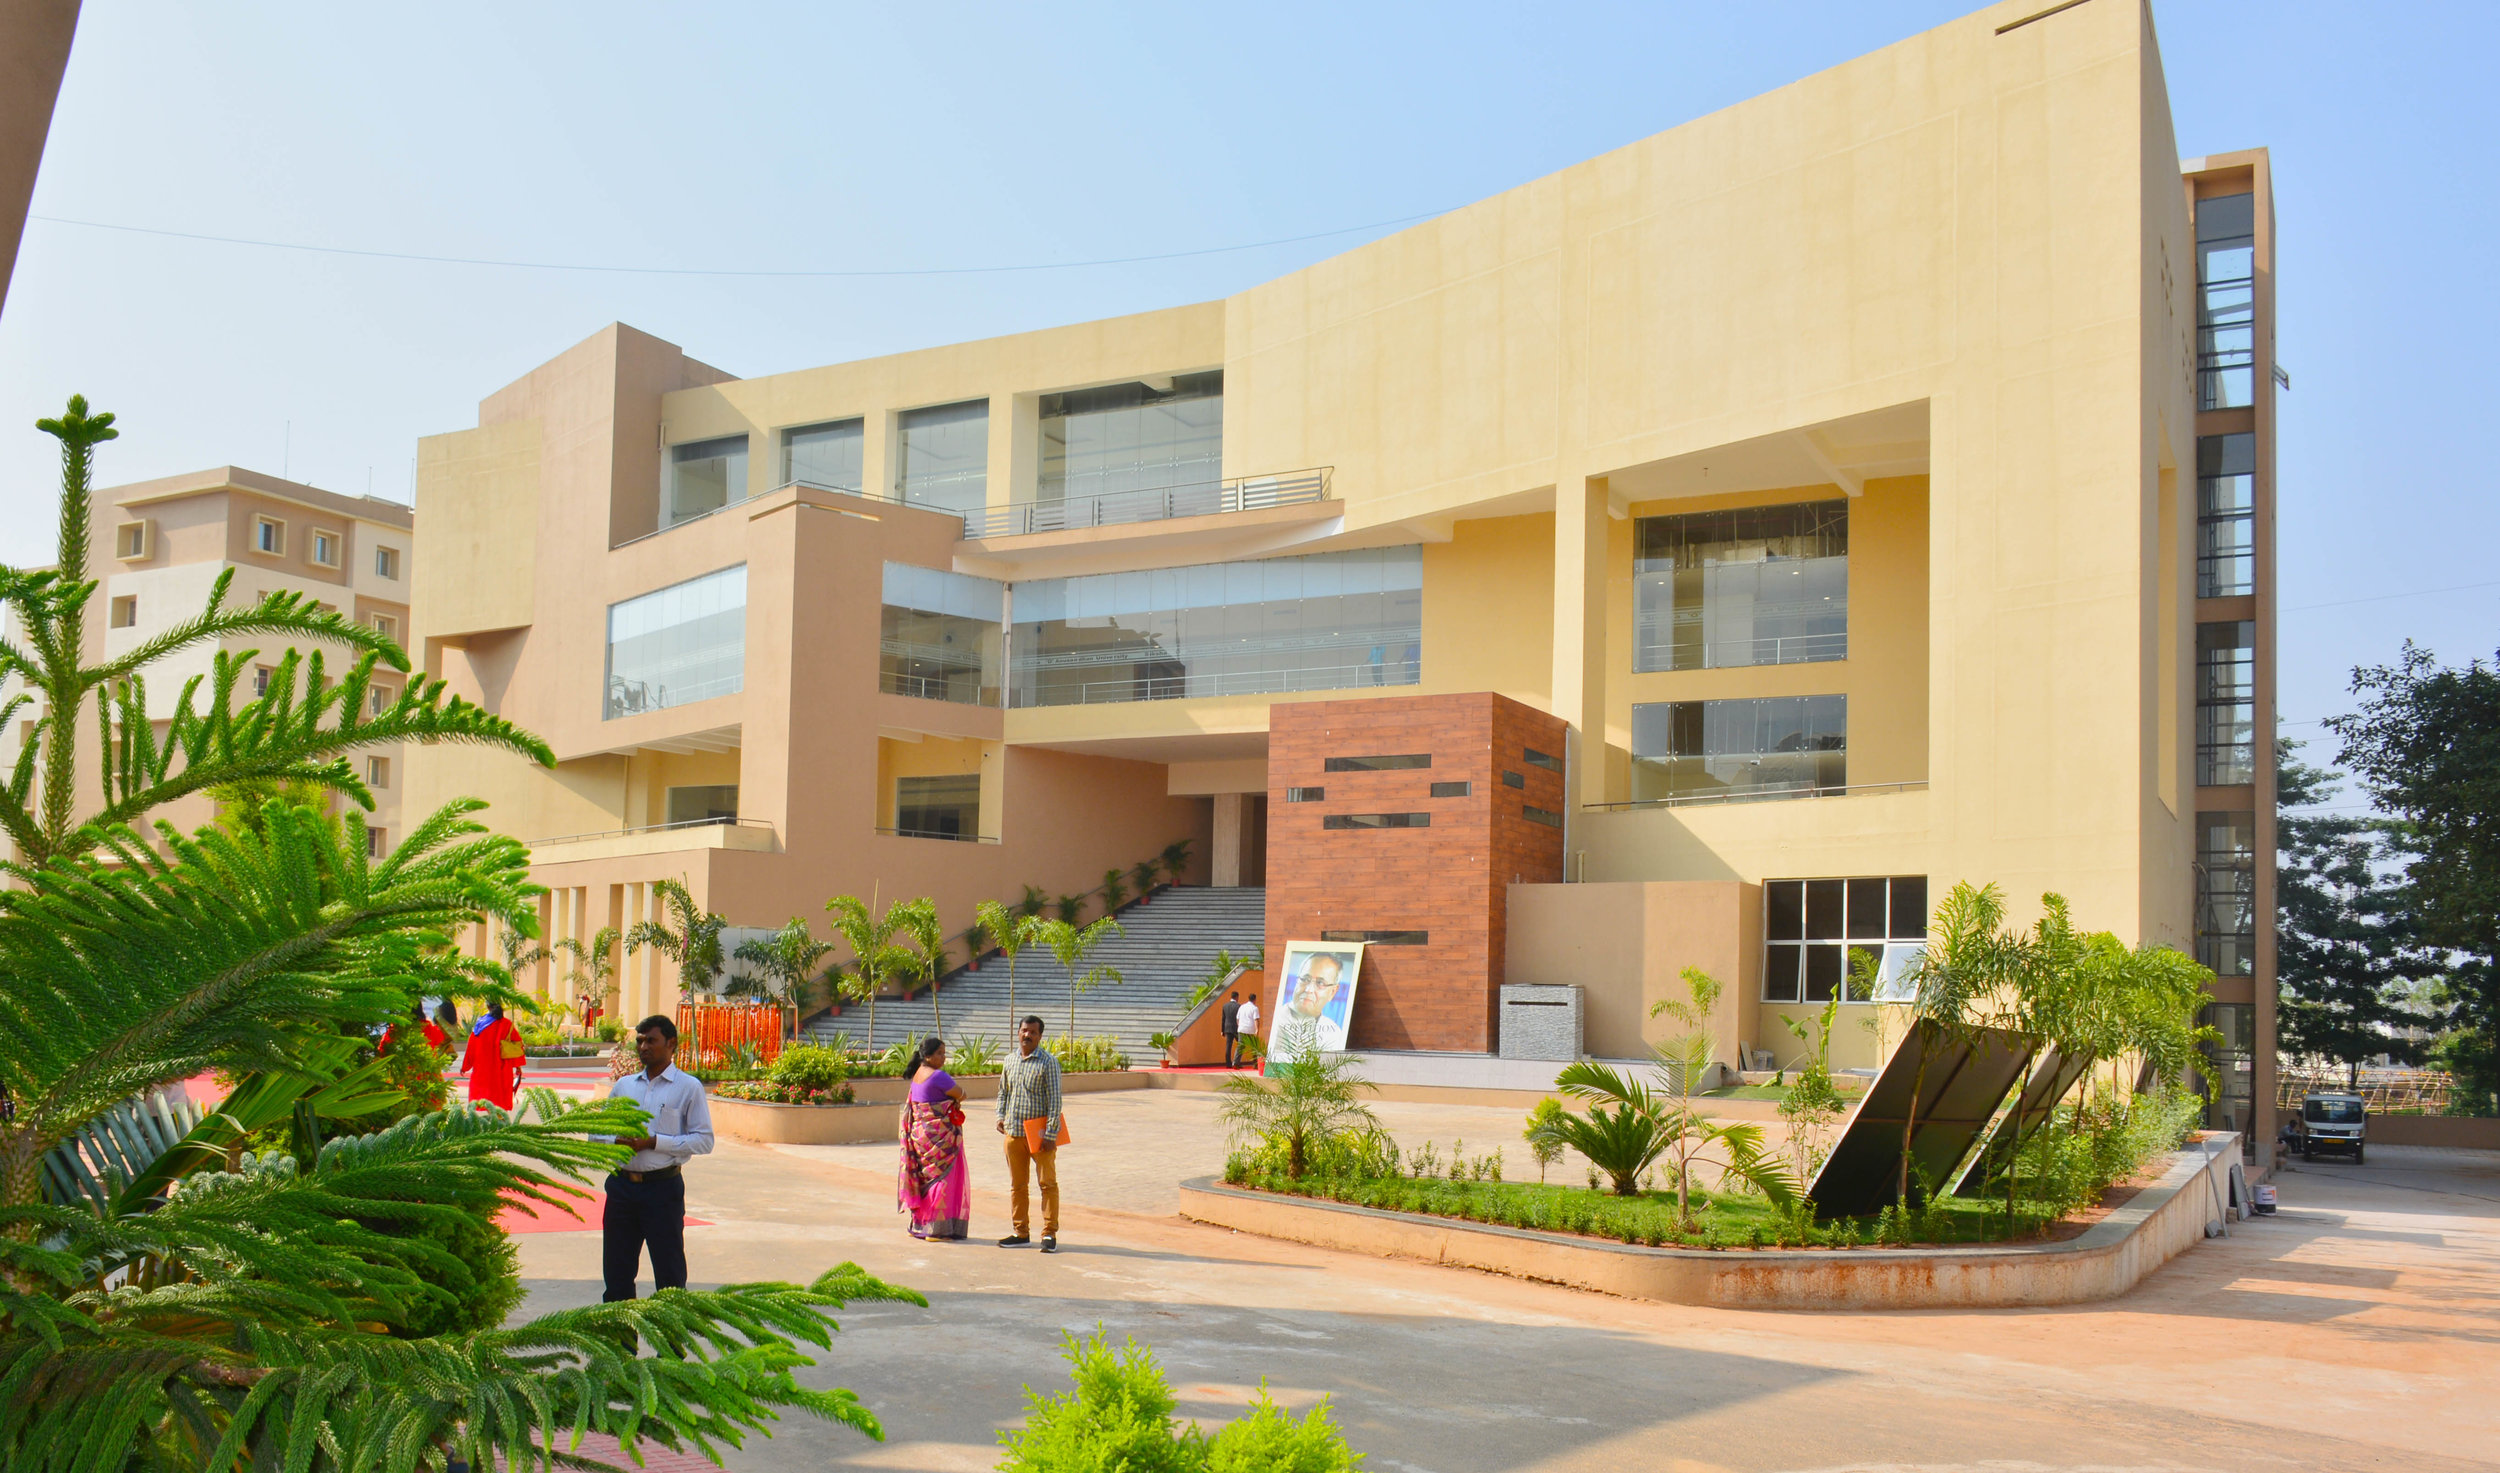 SOA among 60 institutions granted graded autonomy from UGC - Siksha 'O' Anusandhan (Deemed to be University) has found a place among 60 better performing institutions of higher learning in the country which have been granted special status by the central government, enabling them in starting new courses and setting up off-campus centres without requiring to obtain approvals.The list of the 60 institutions, comprising central universities, state universities, private universities and deemed to be universities were released by the Union Minister for HRD, Mr. Prakash Javadekar in New Delhi